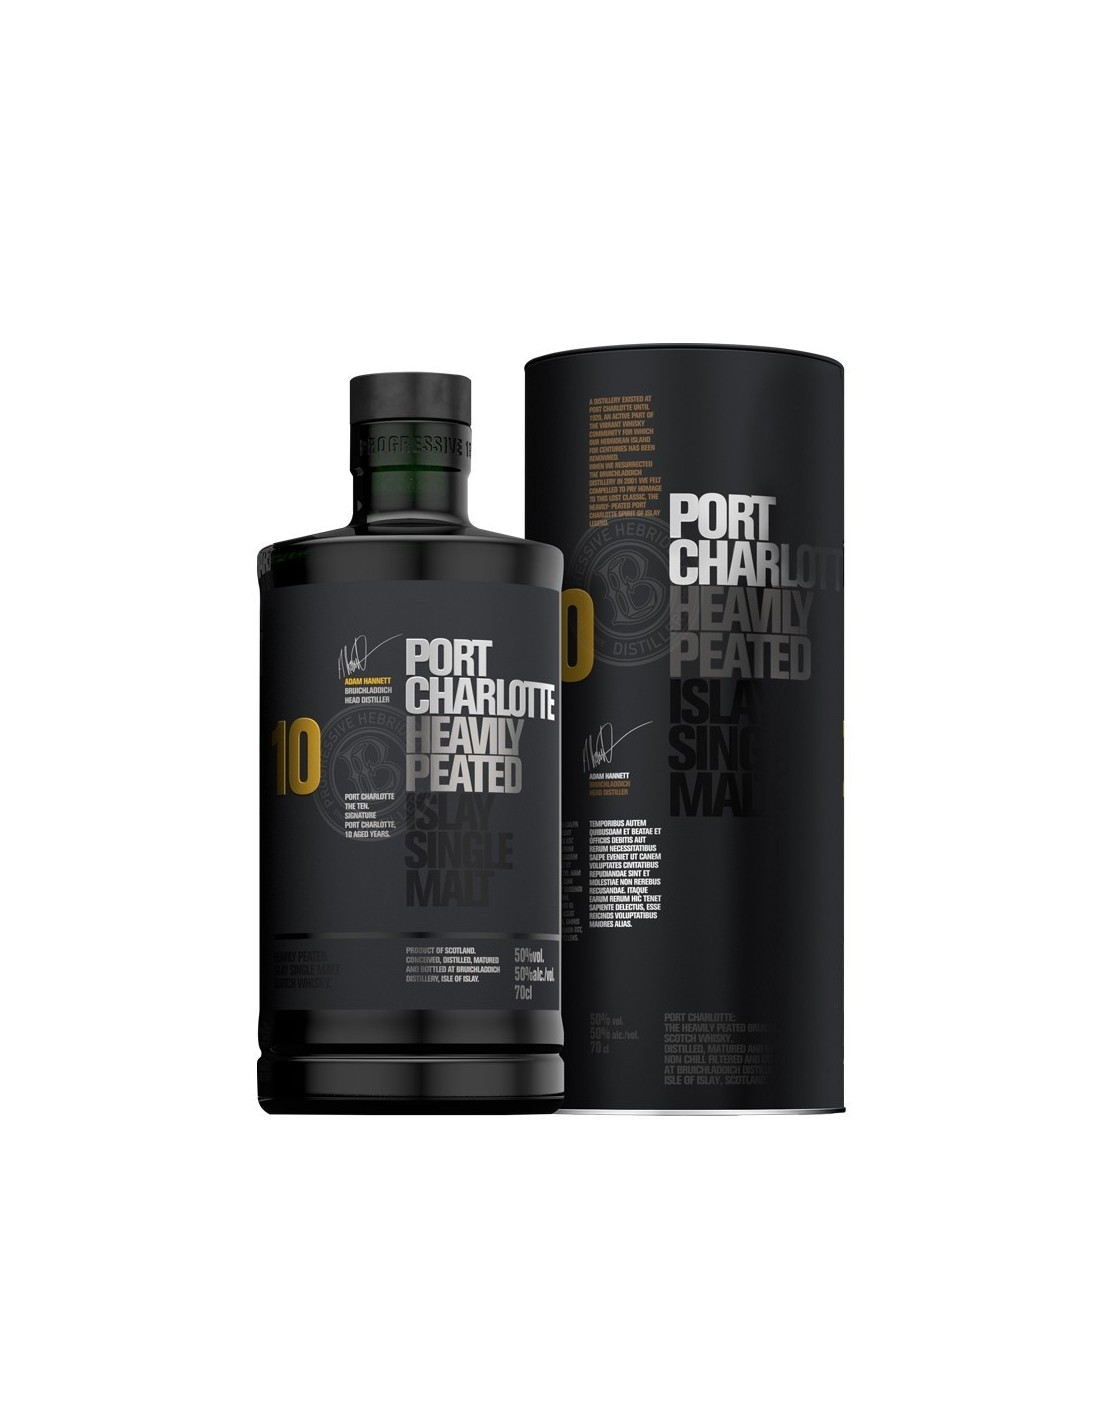 Whisky Port Charlotte, 10 ani, 50% alc., 0.7L, Scotia